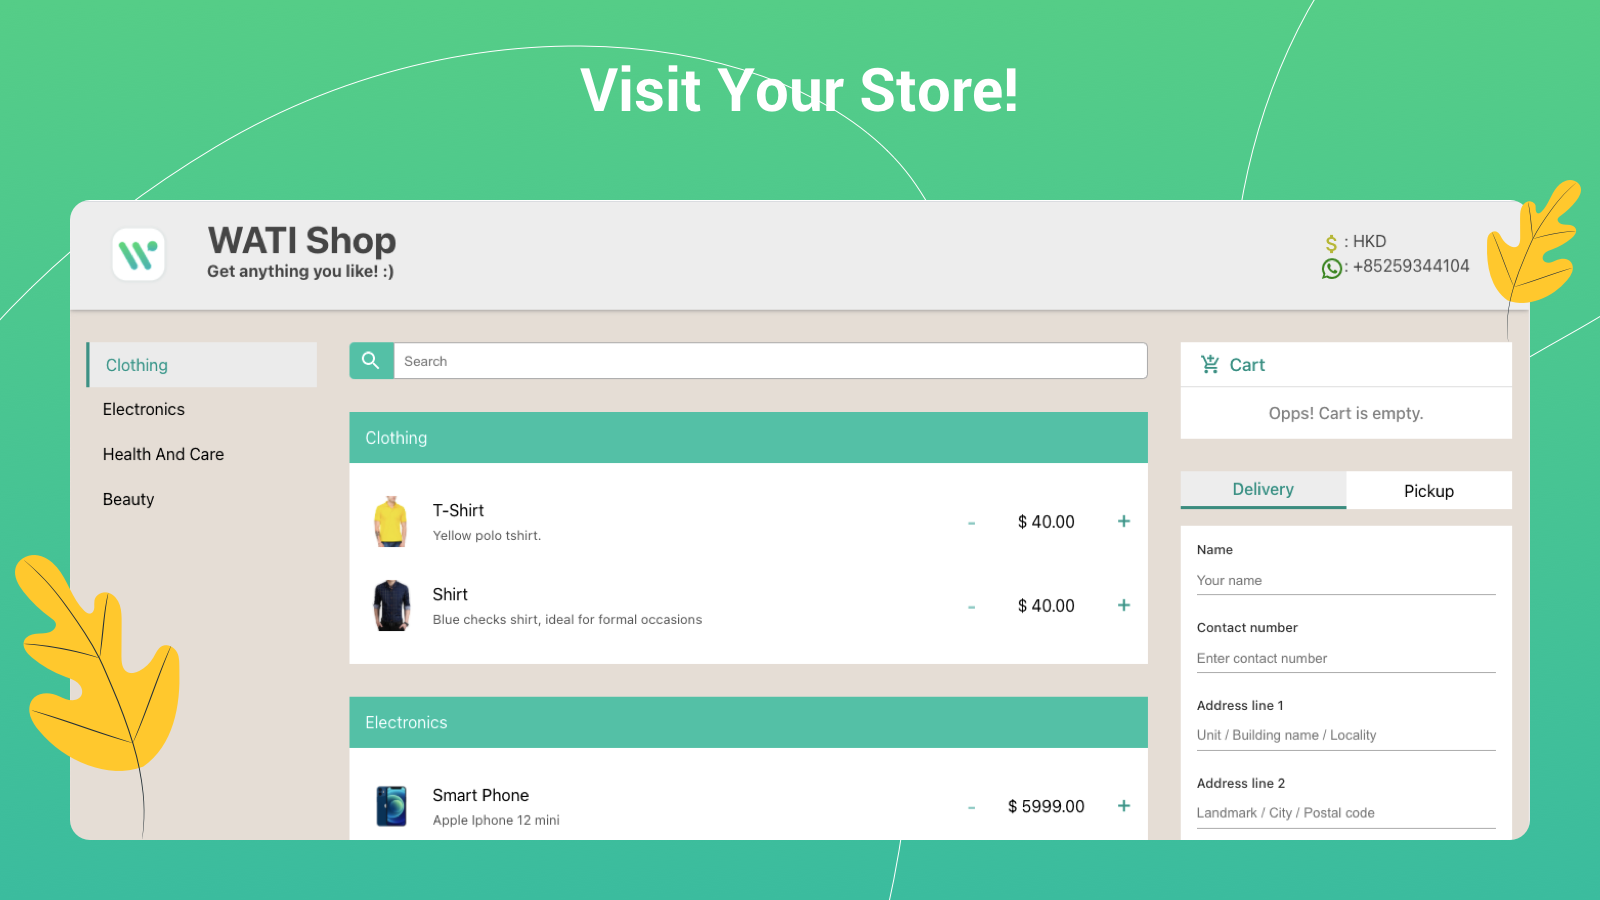 Visit Your Store